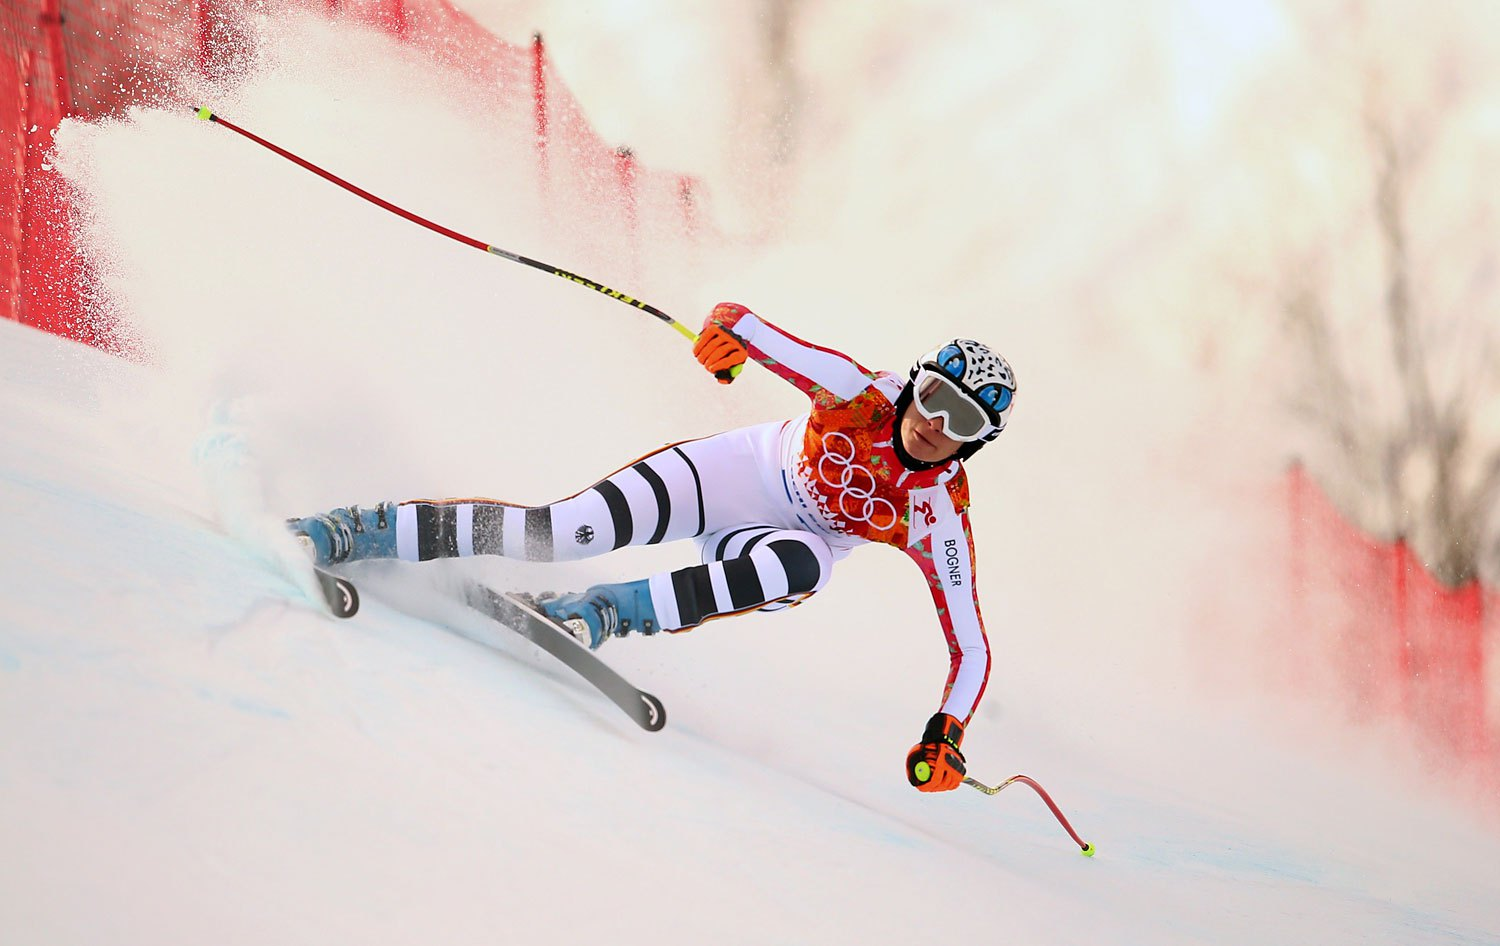 Maria Hoefl-Riesch of Germany competes in the Ladies' Super Combined Downhill in Rosa Khutor Alpine Center at the Sochi 2014 Olympic Games, Feb. 10, 2014.